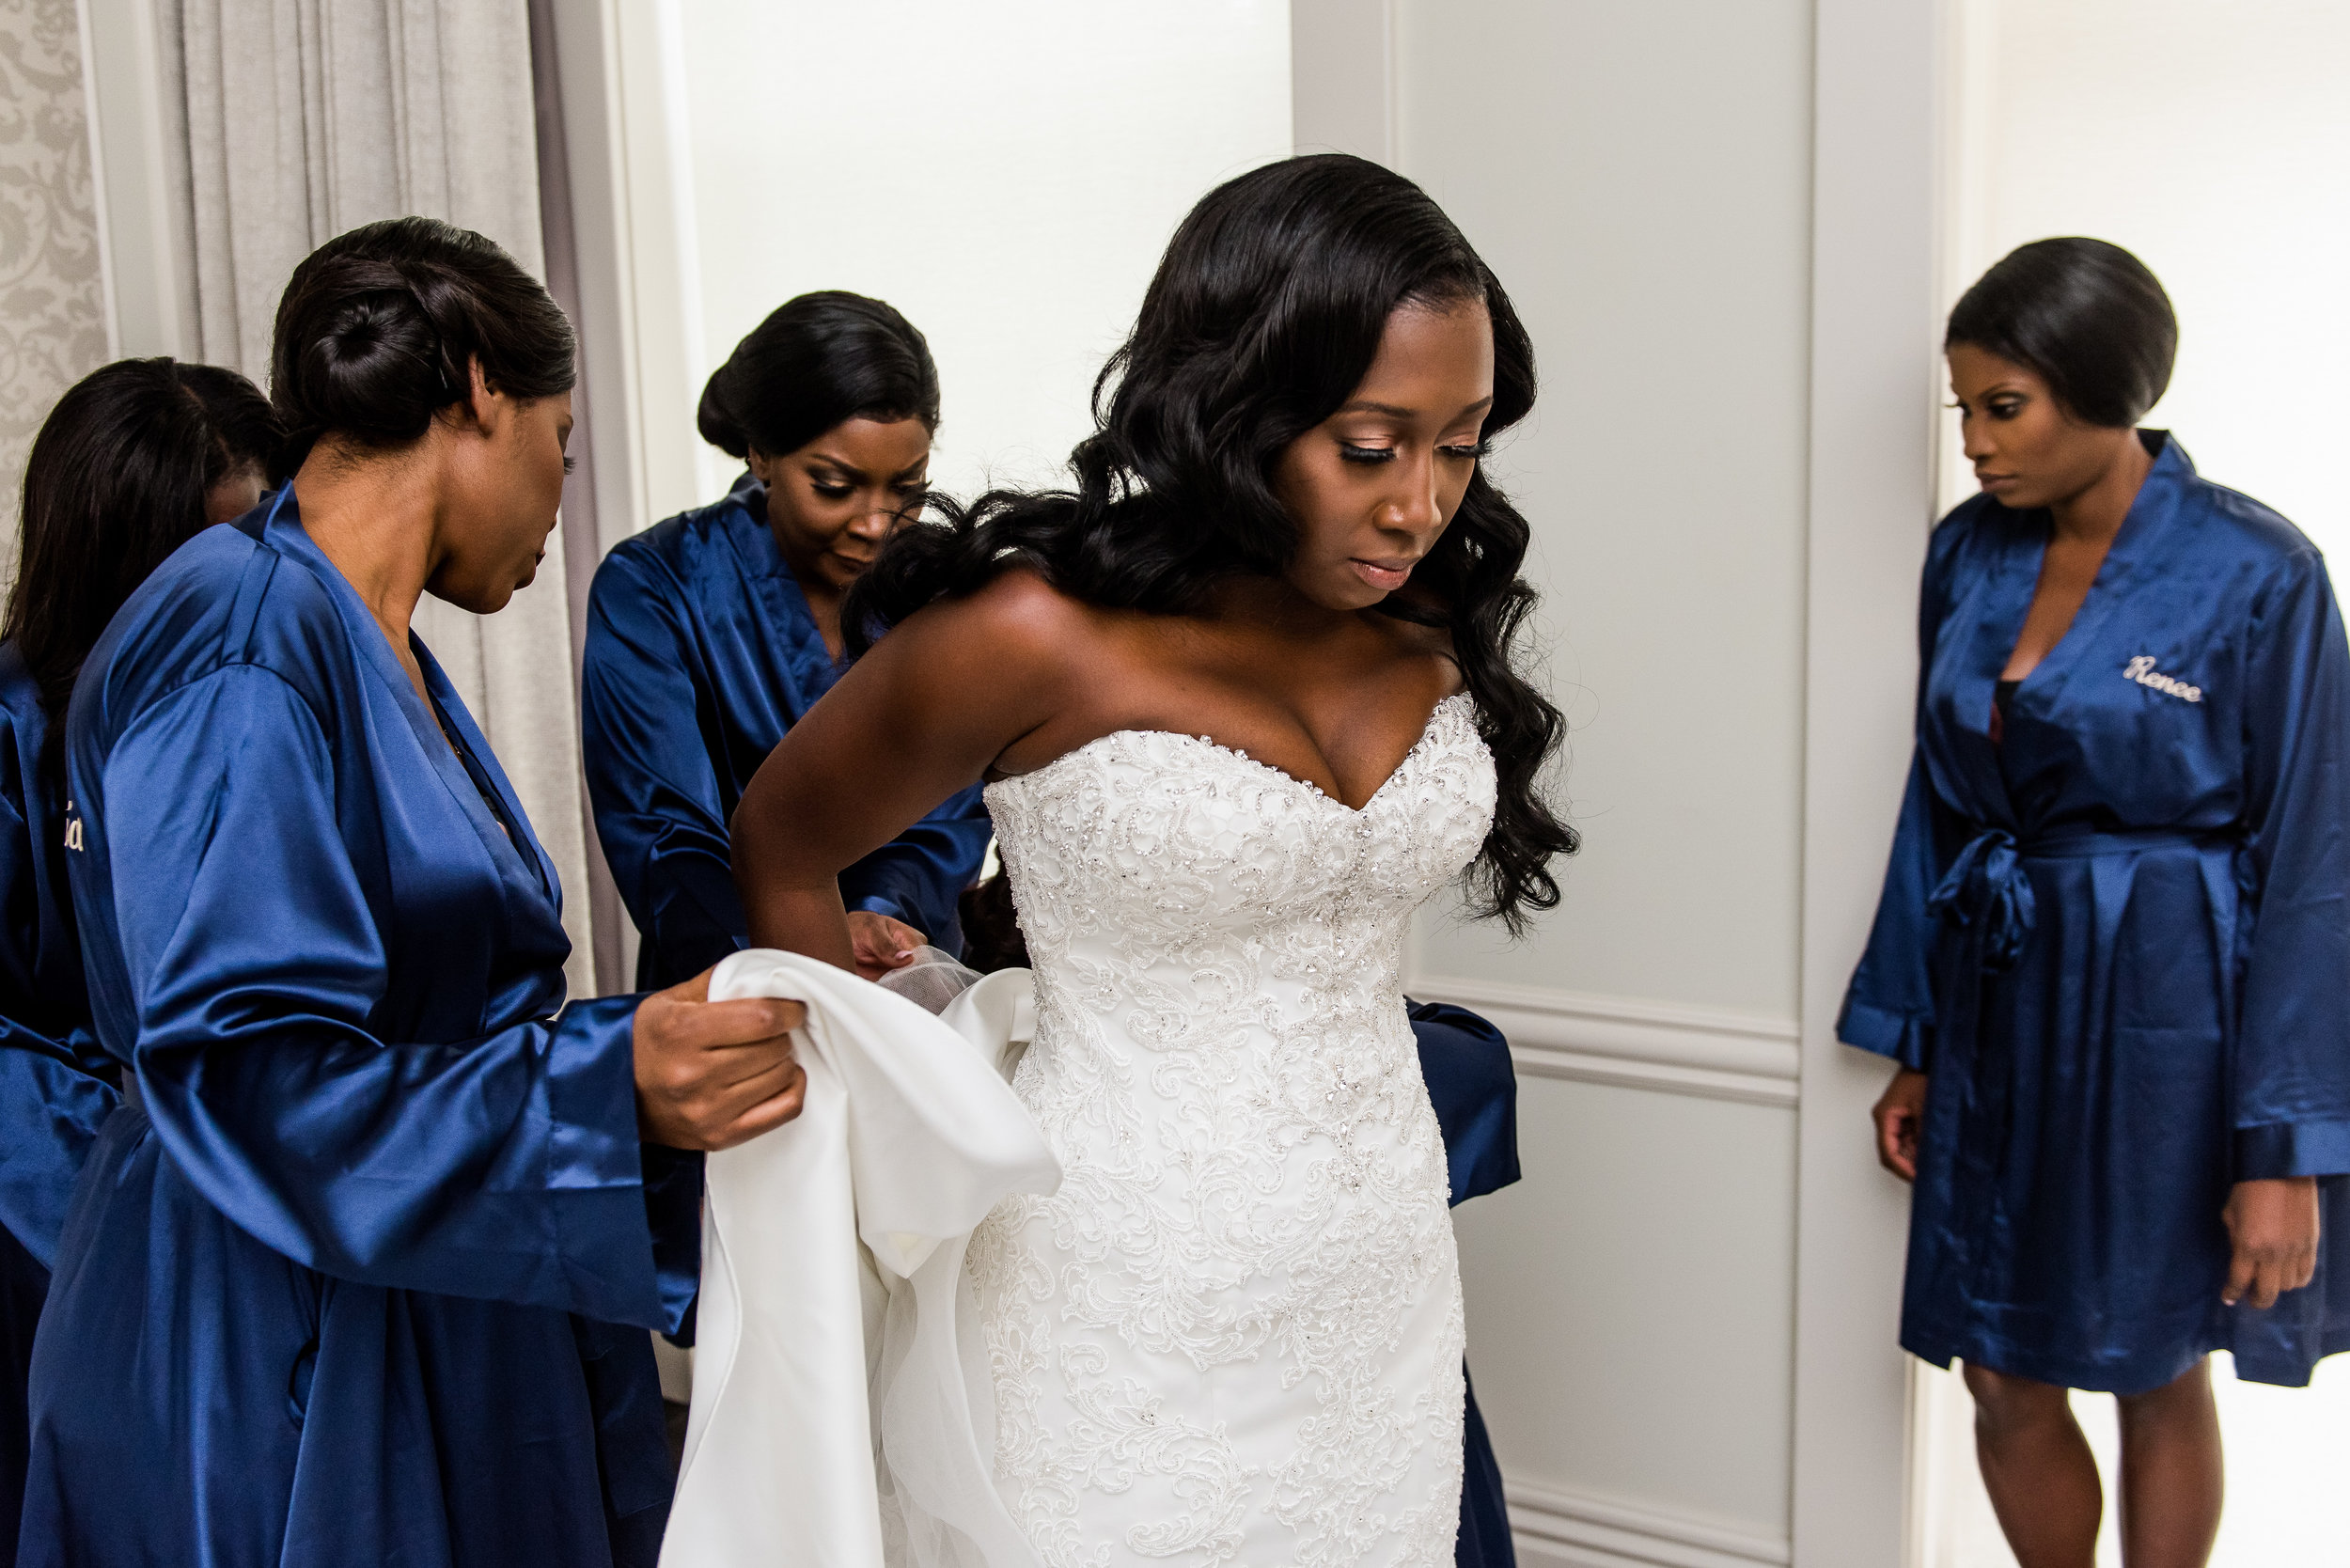 THE ONE - The strapless beaded-bodice, corset back bridal gown by Maggie Sottero left our bride in awe the moment she slipped it on at Kleinfeld Bridal.